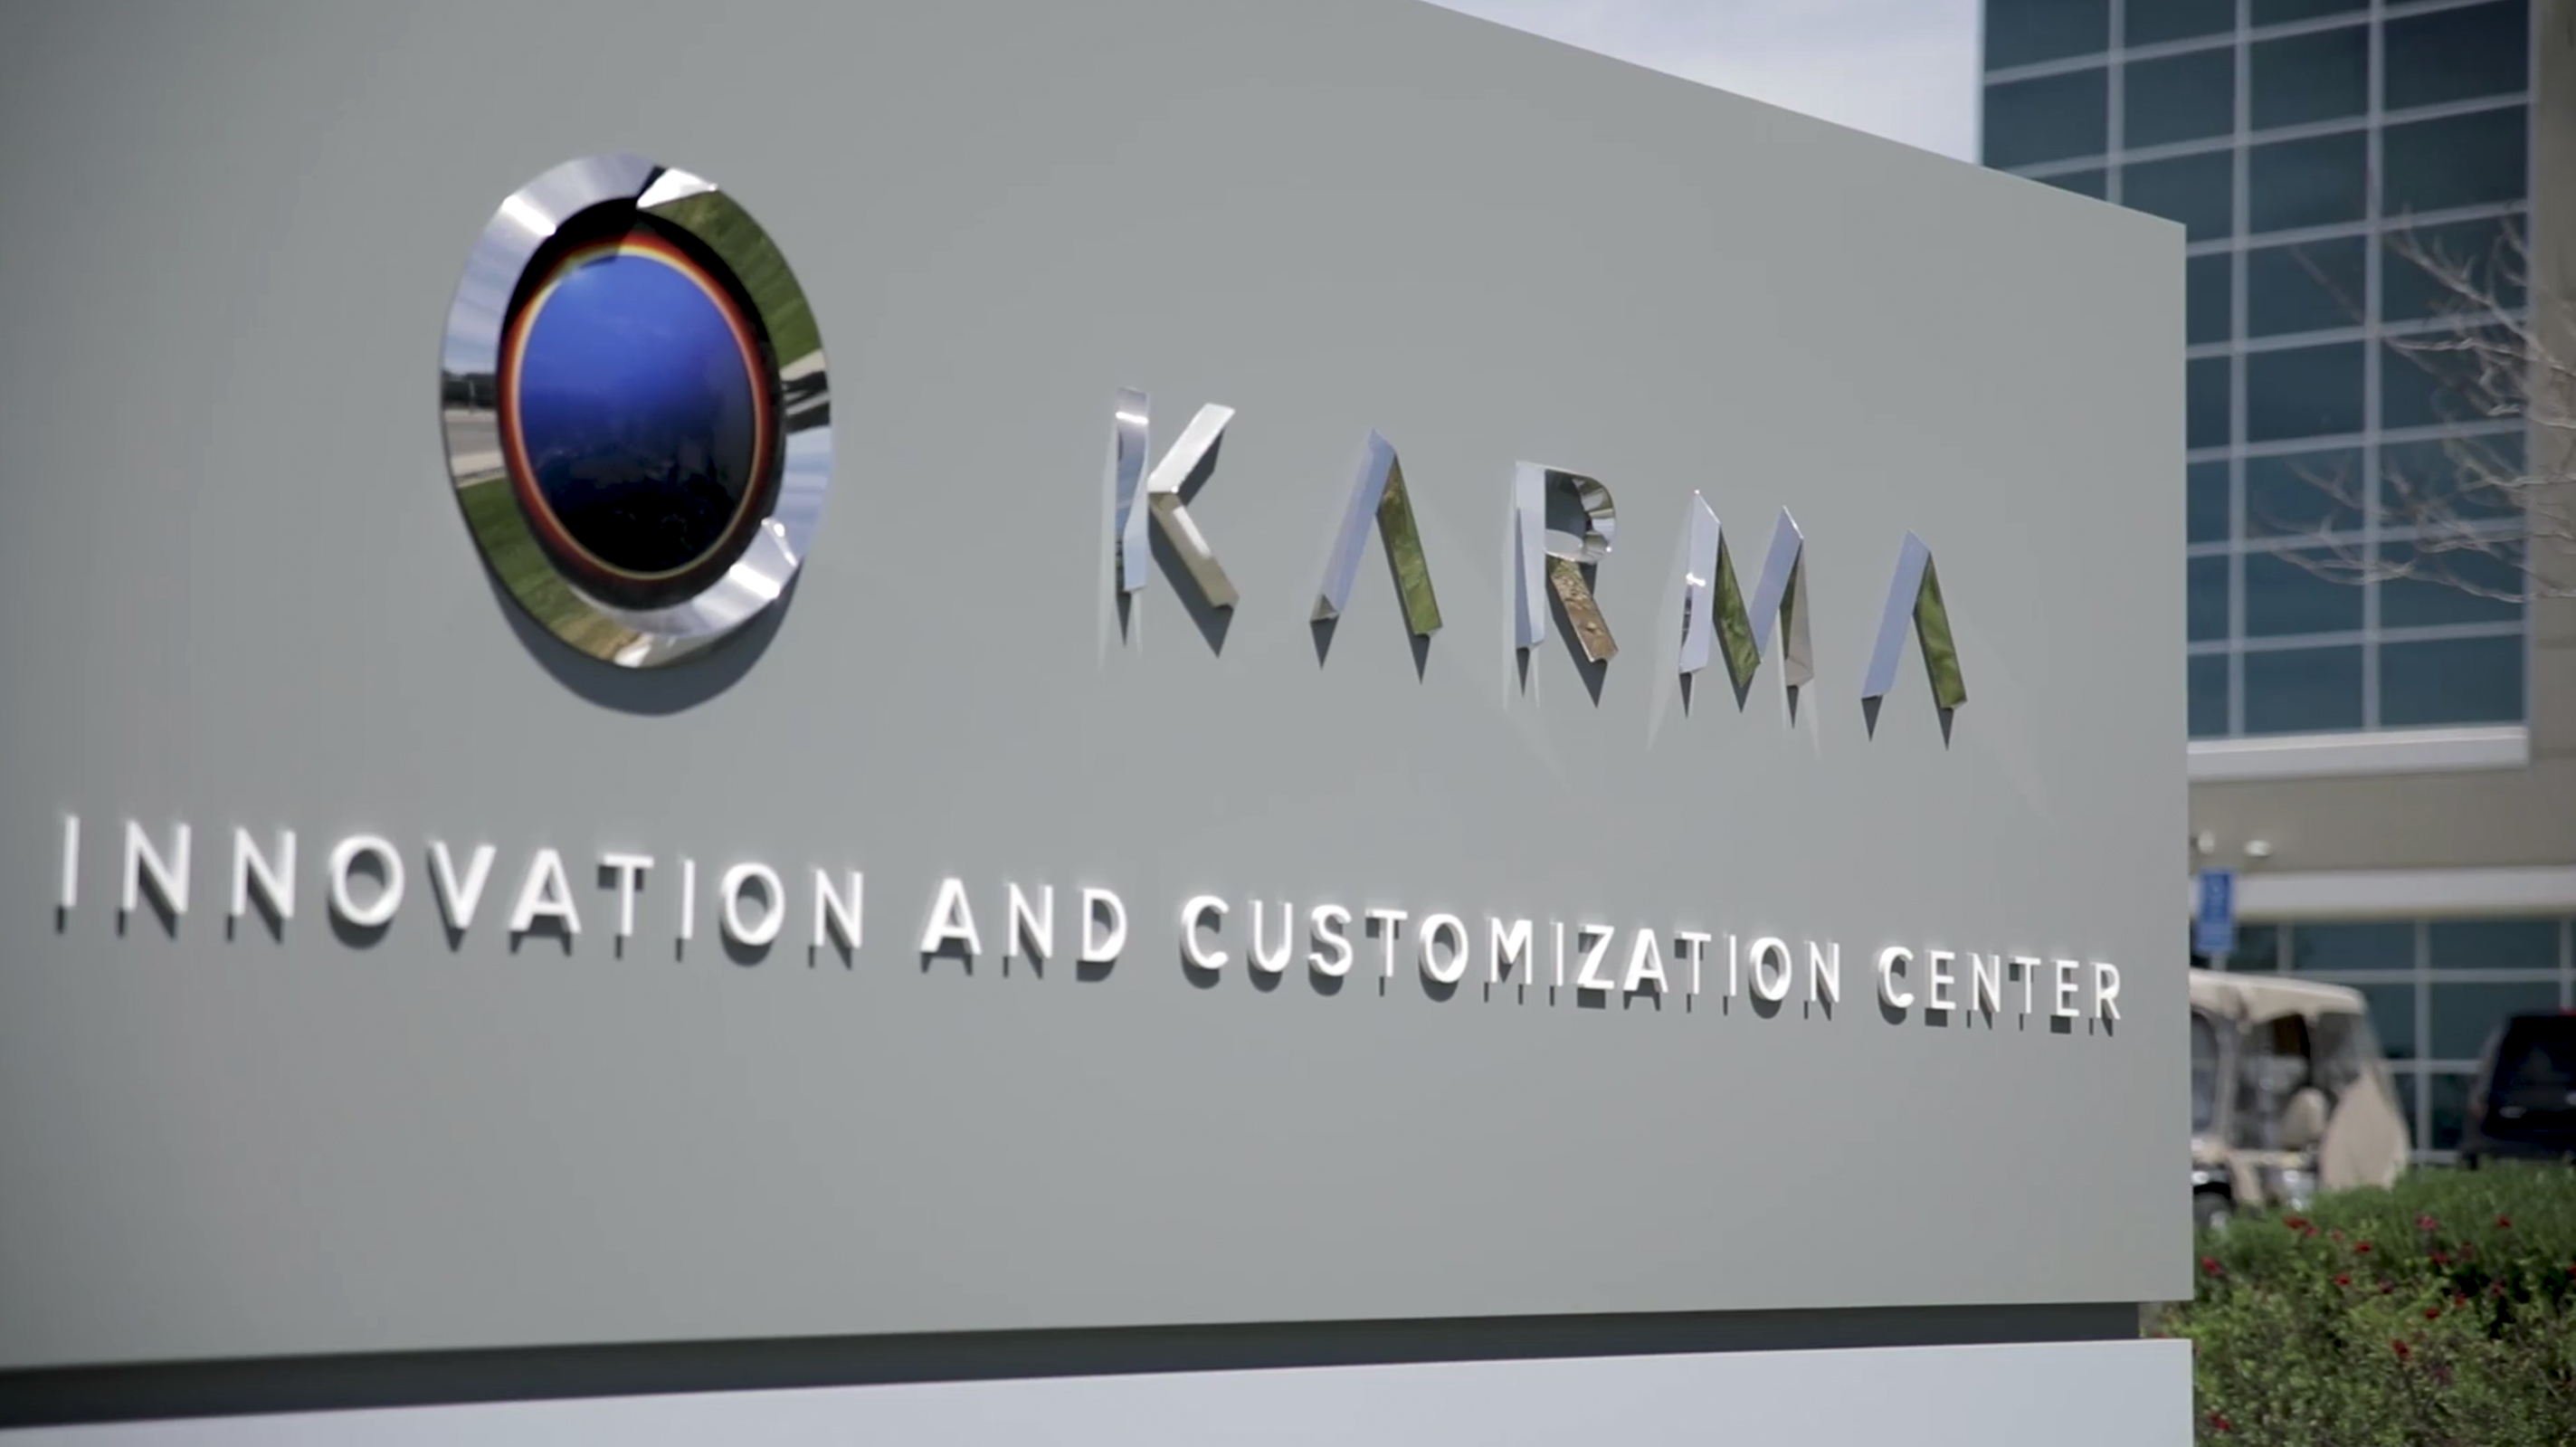 Ayro, Karma Automotive to Design Light-Duty Electric Vehicles